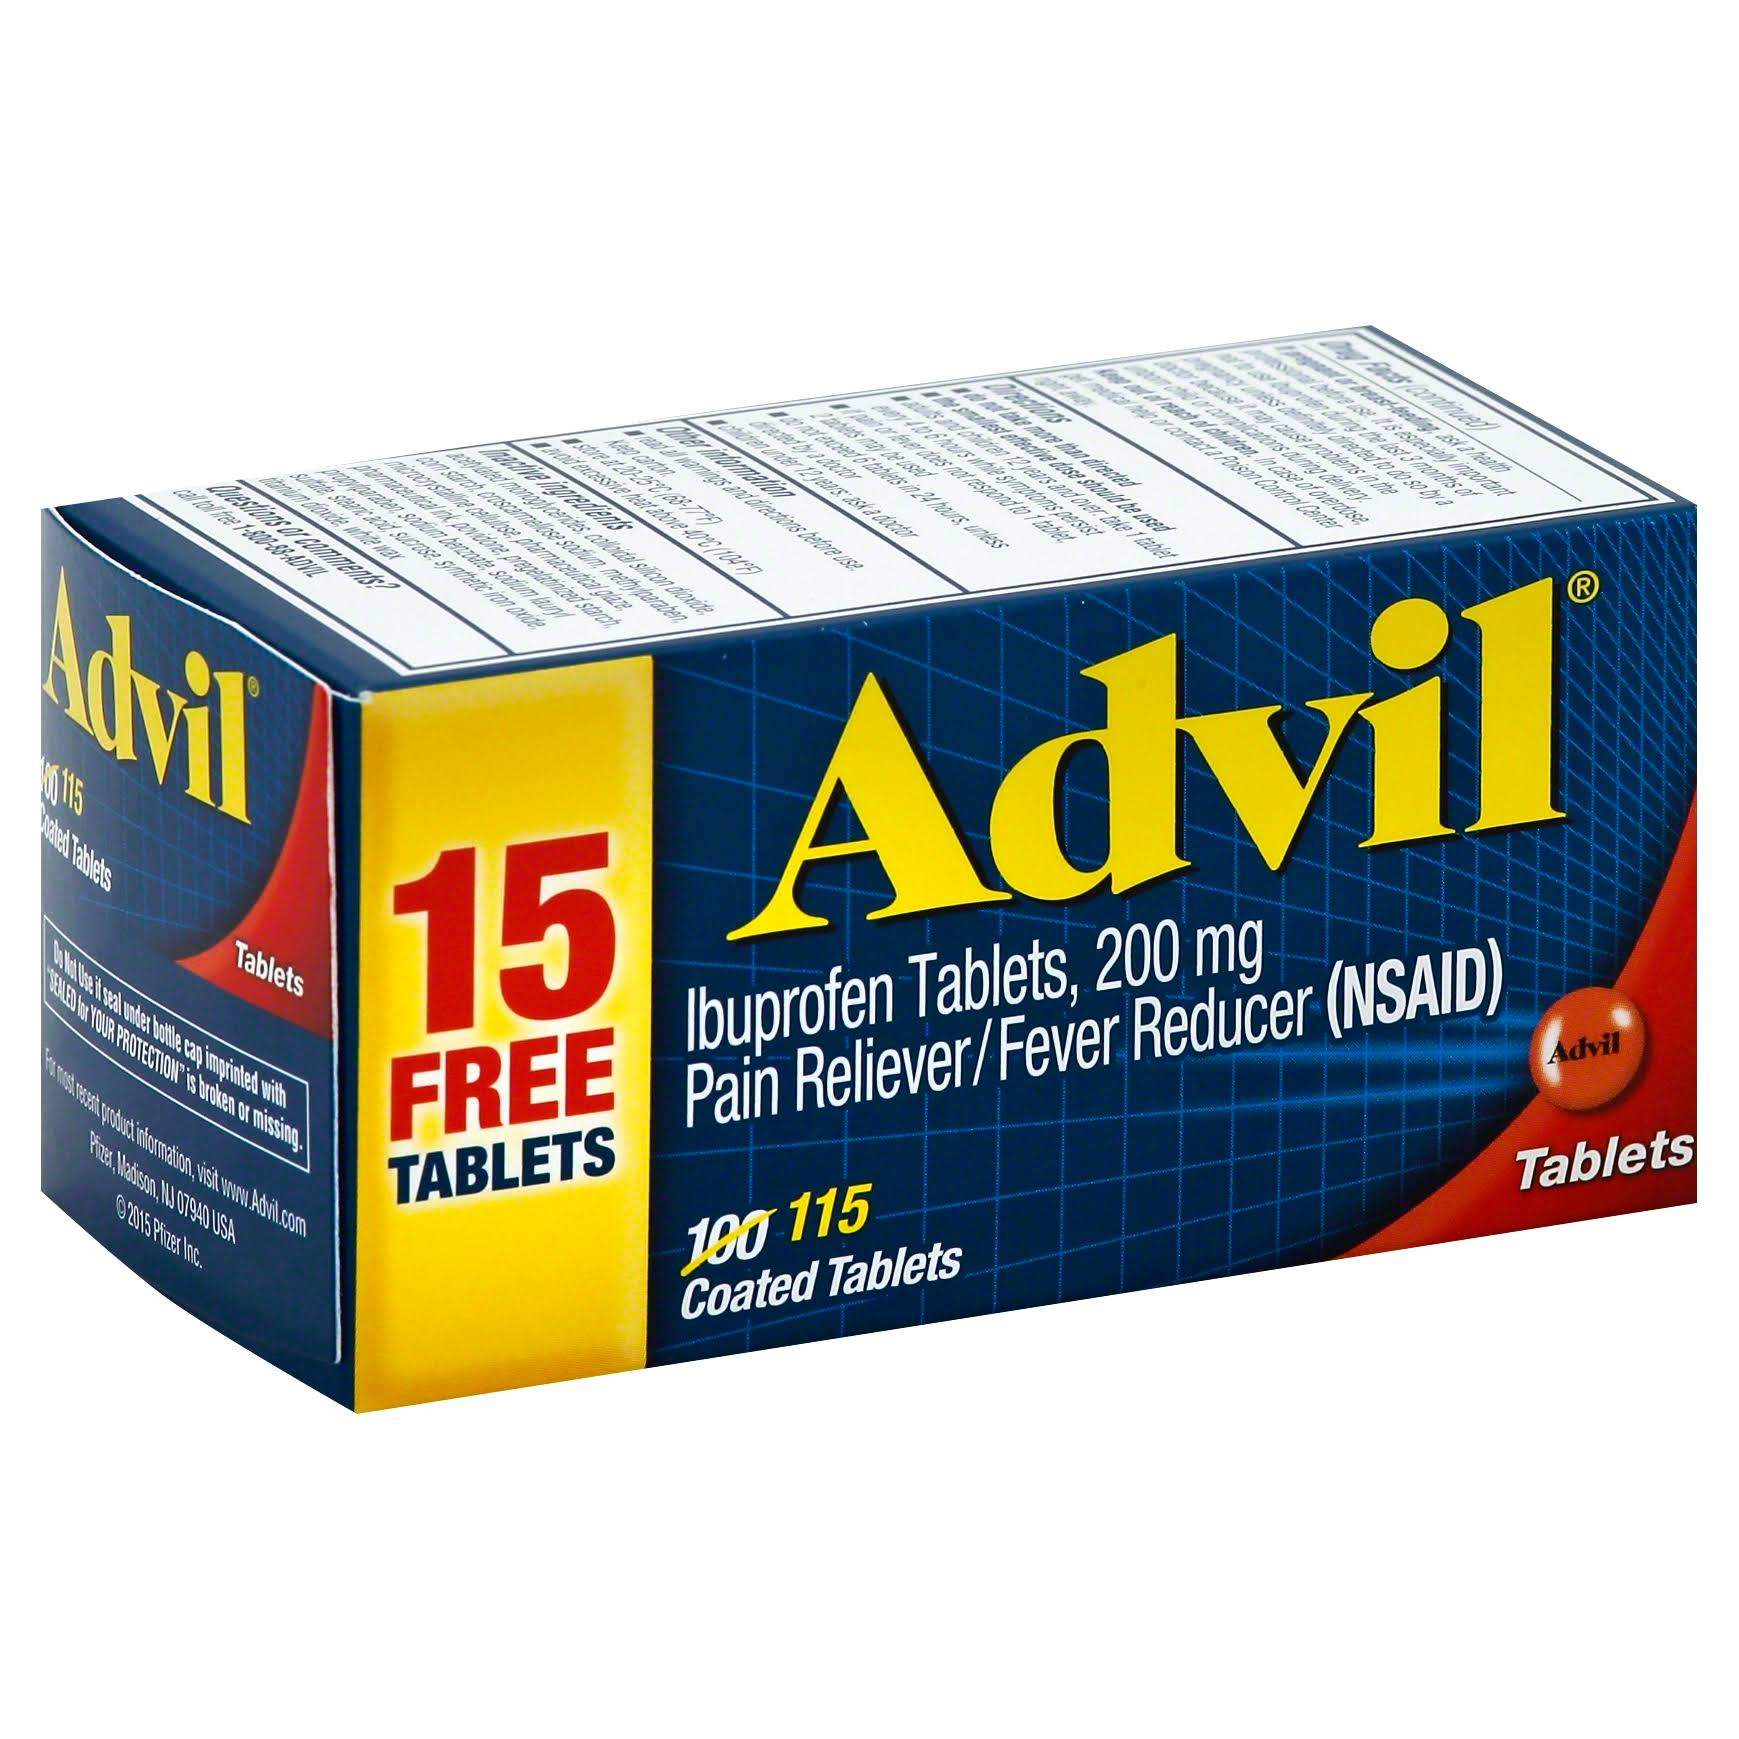 Advil Ibuprofen Coated Tablets - 200 mg, 115 Pack